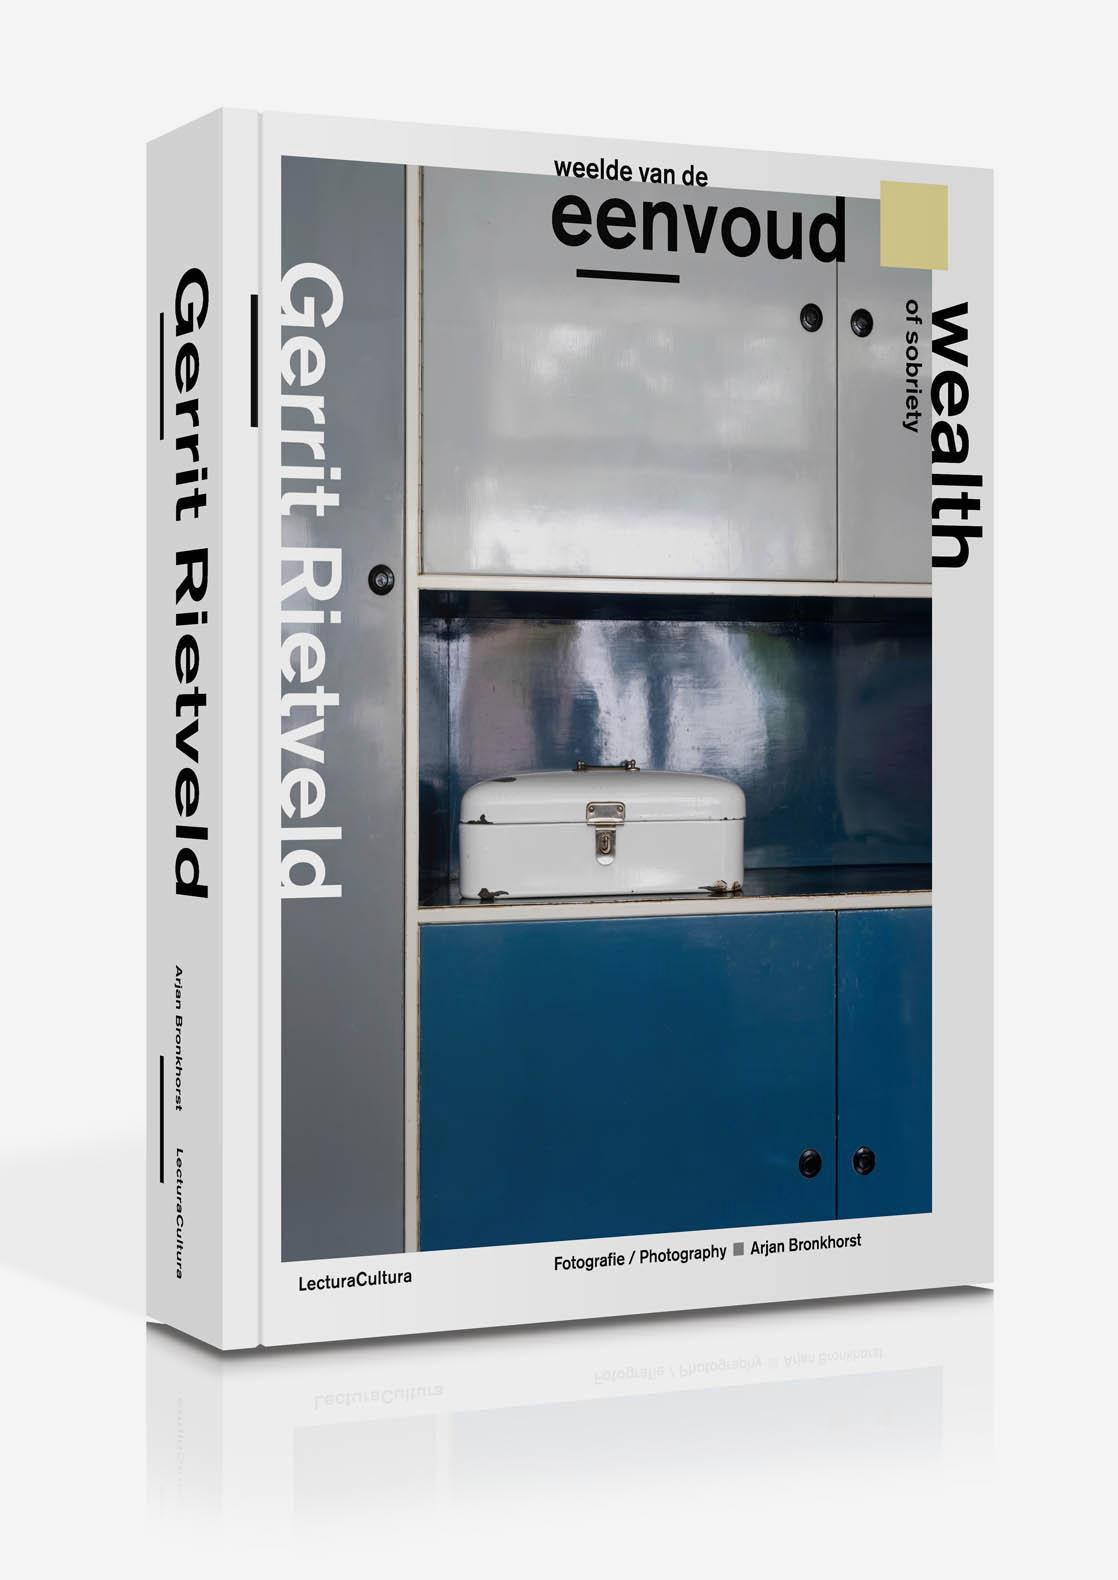 Book cover displaying a history of Gerrit Rietveld's modernist houses